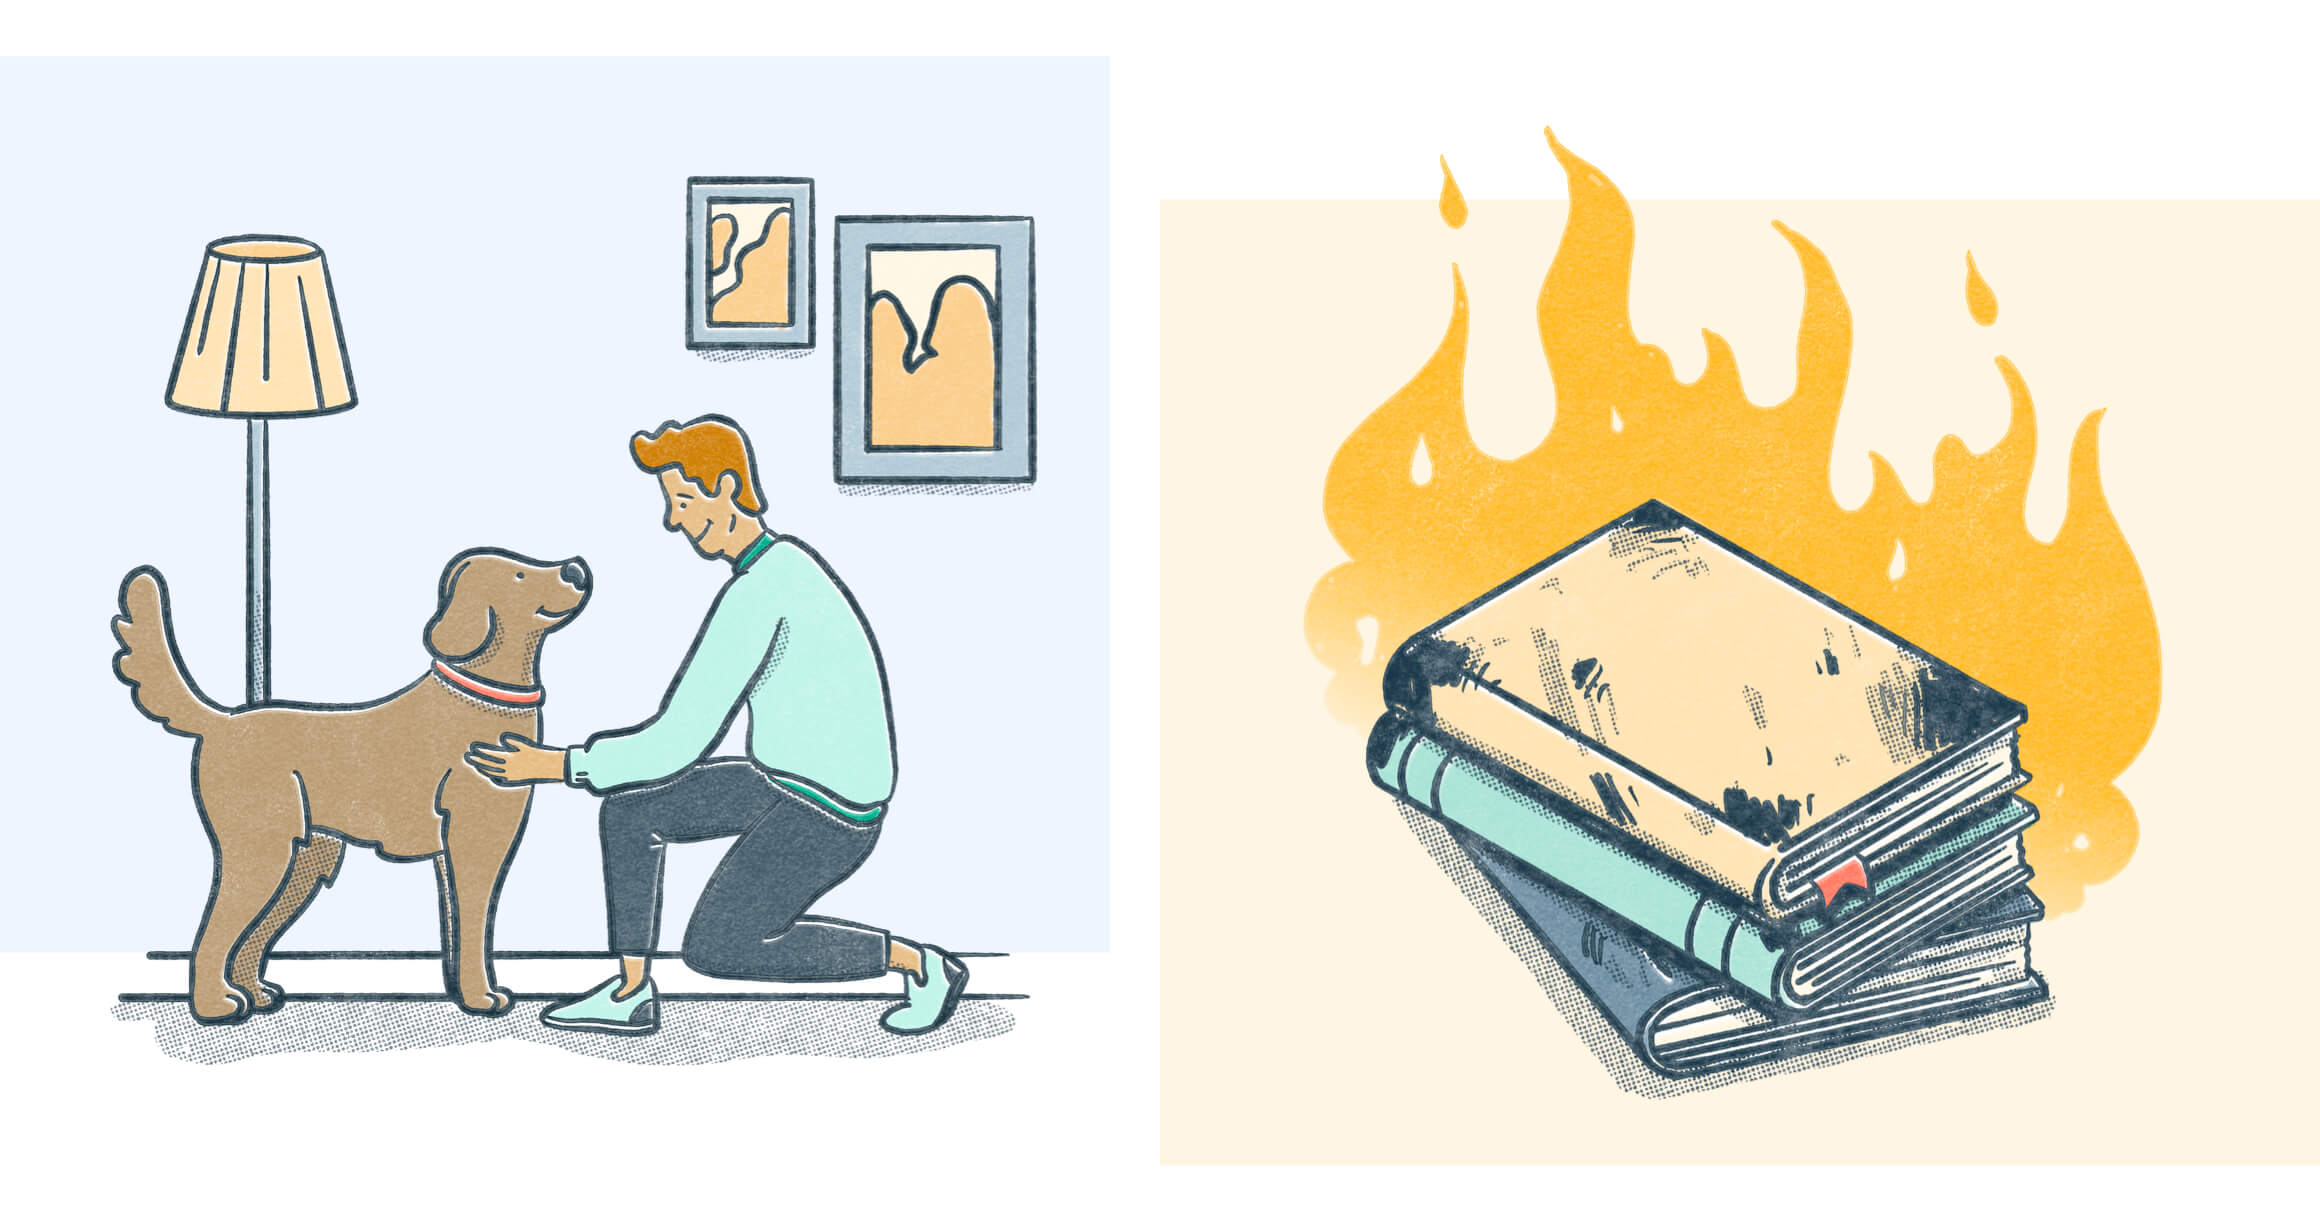 A man playing with his dog on the left and a stack of books on fire on the right. Illustration.